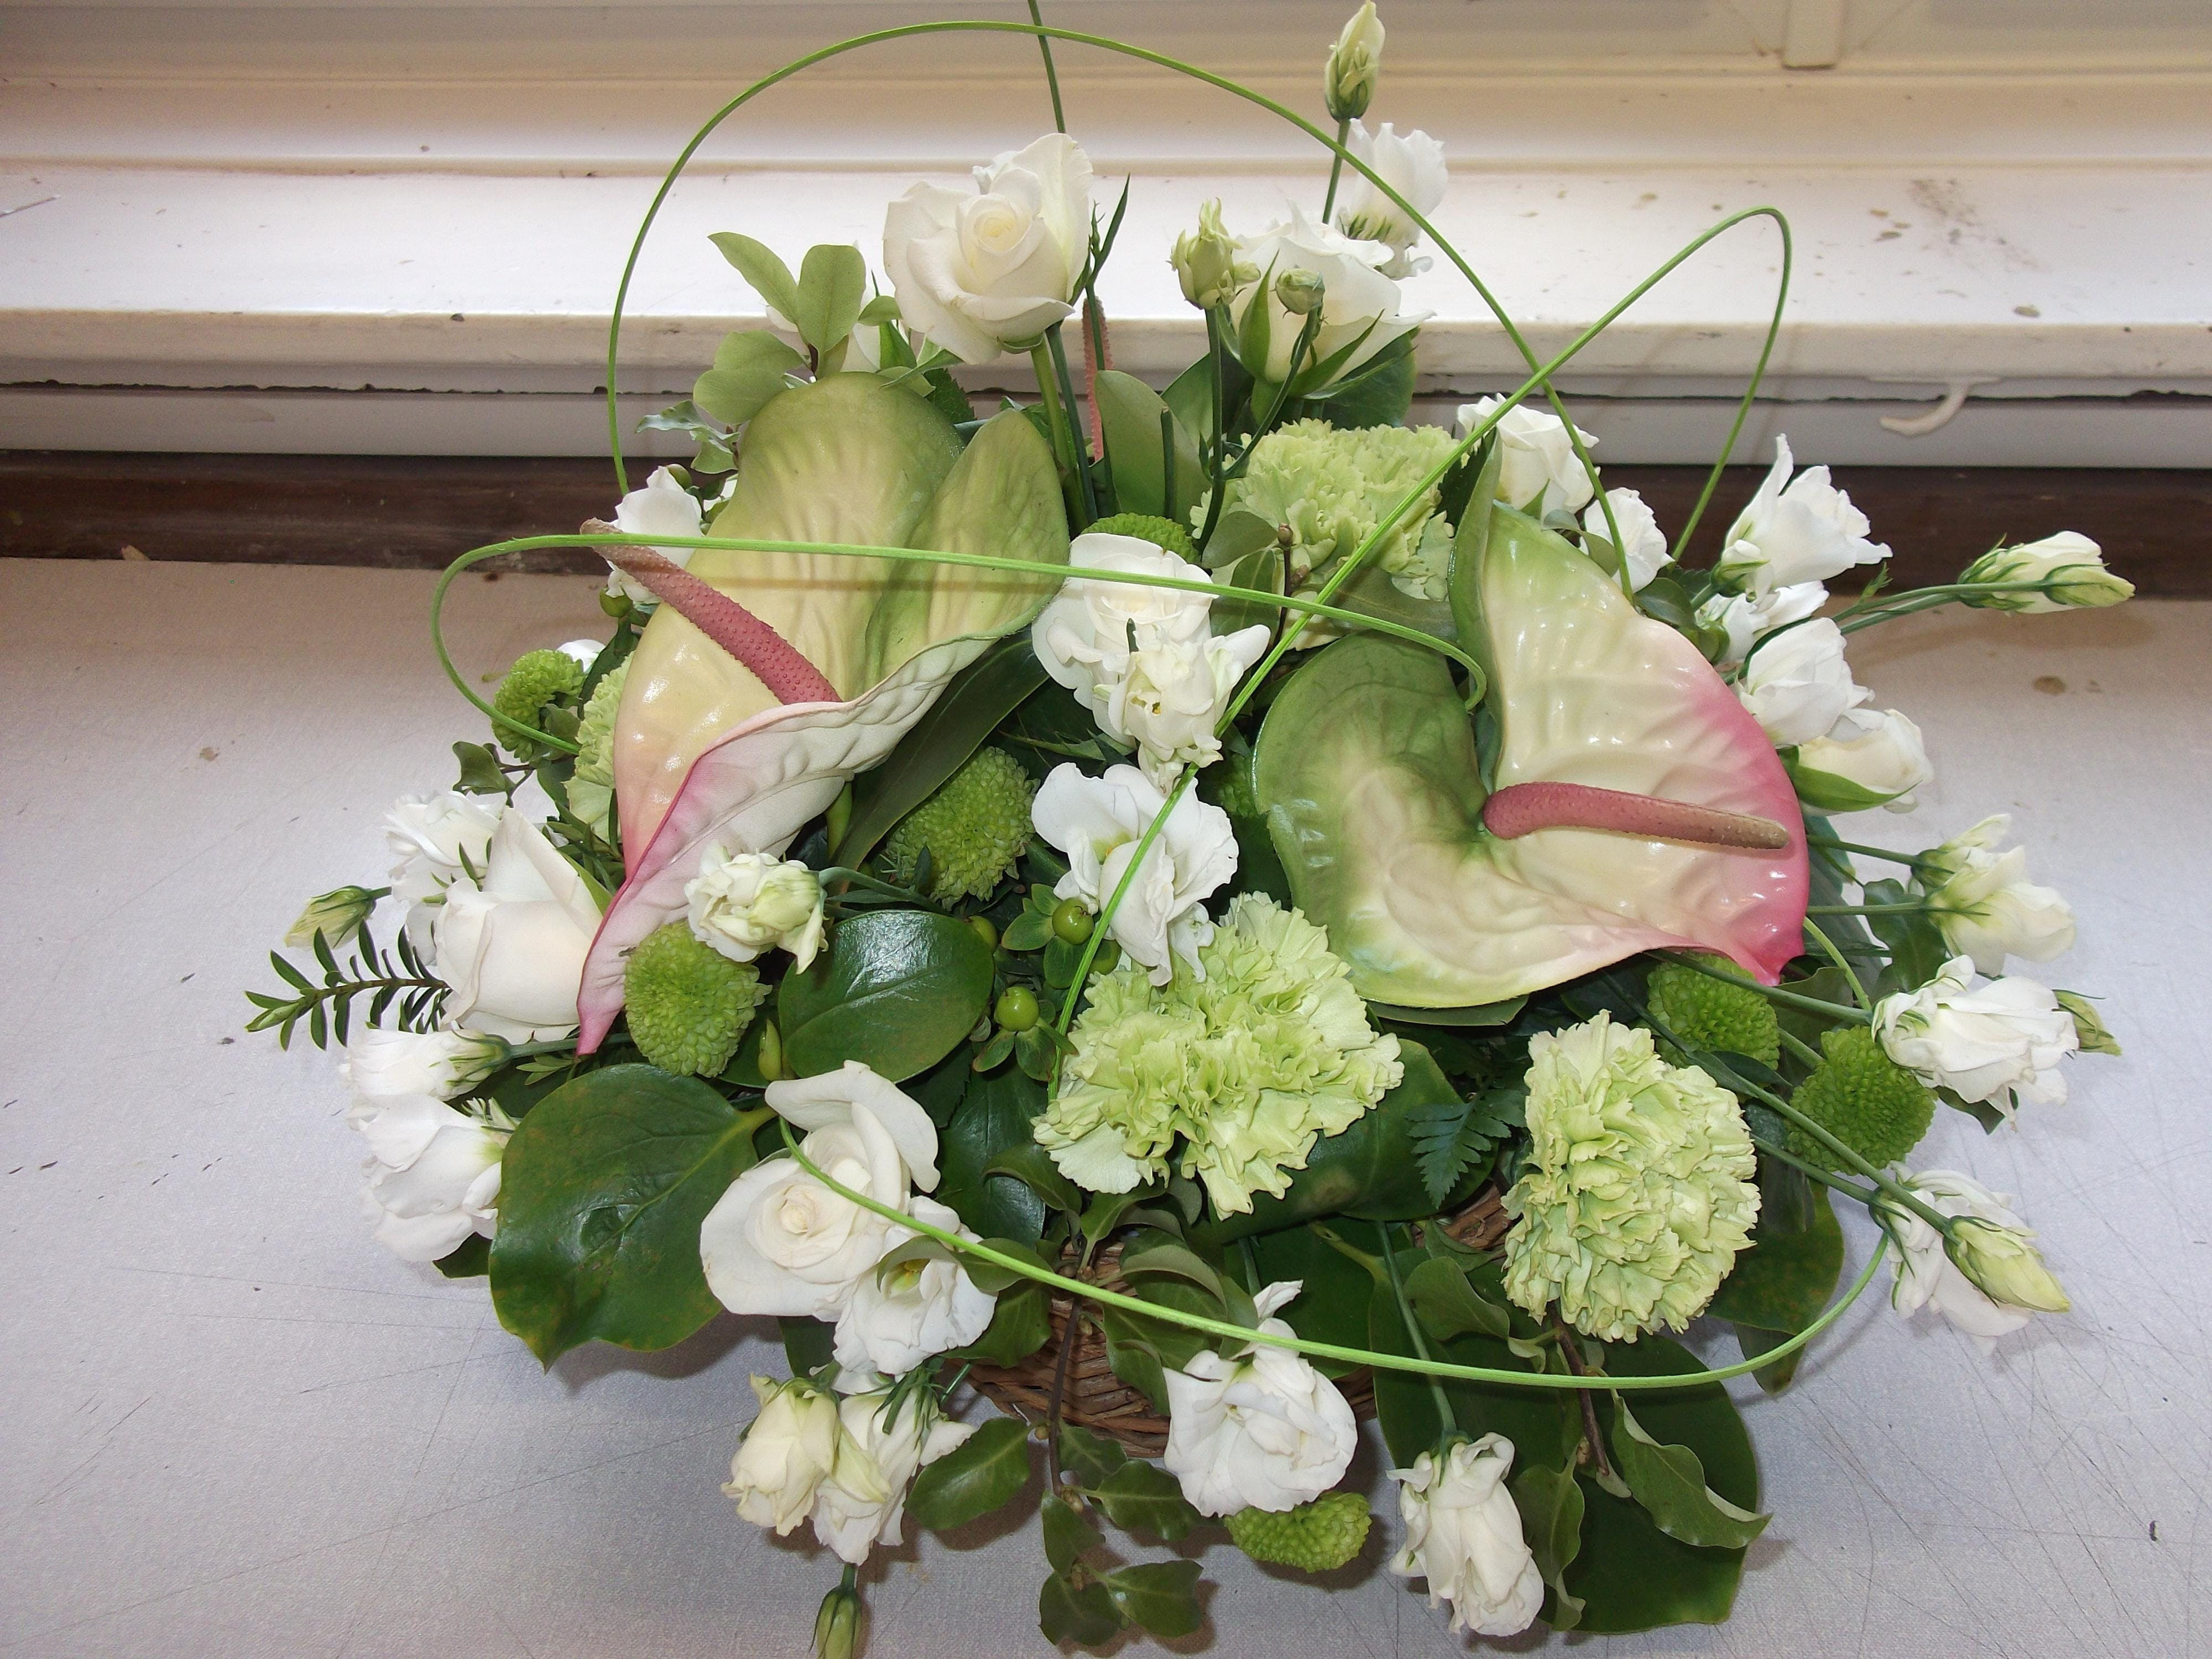 faux flower arrangements in vase of green centerpieces artificial flower centerpieces outstanding floral throughout 0d flower green centerpieces wedding wedding flower centerpieces new tall vase centerpiece